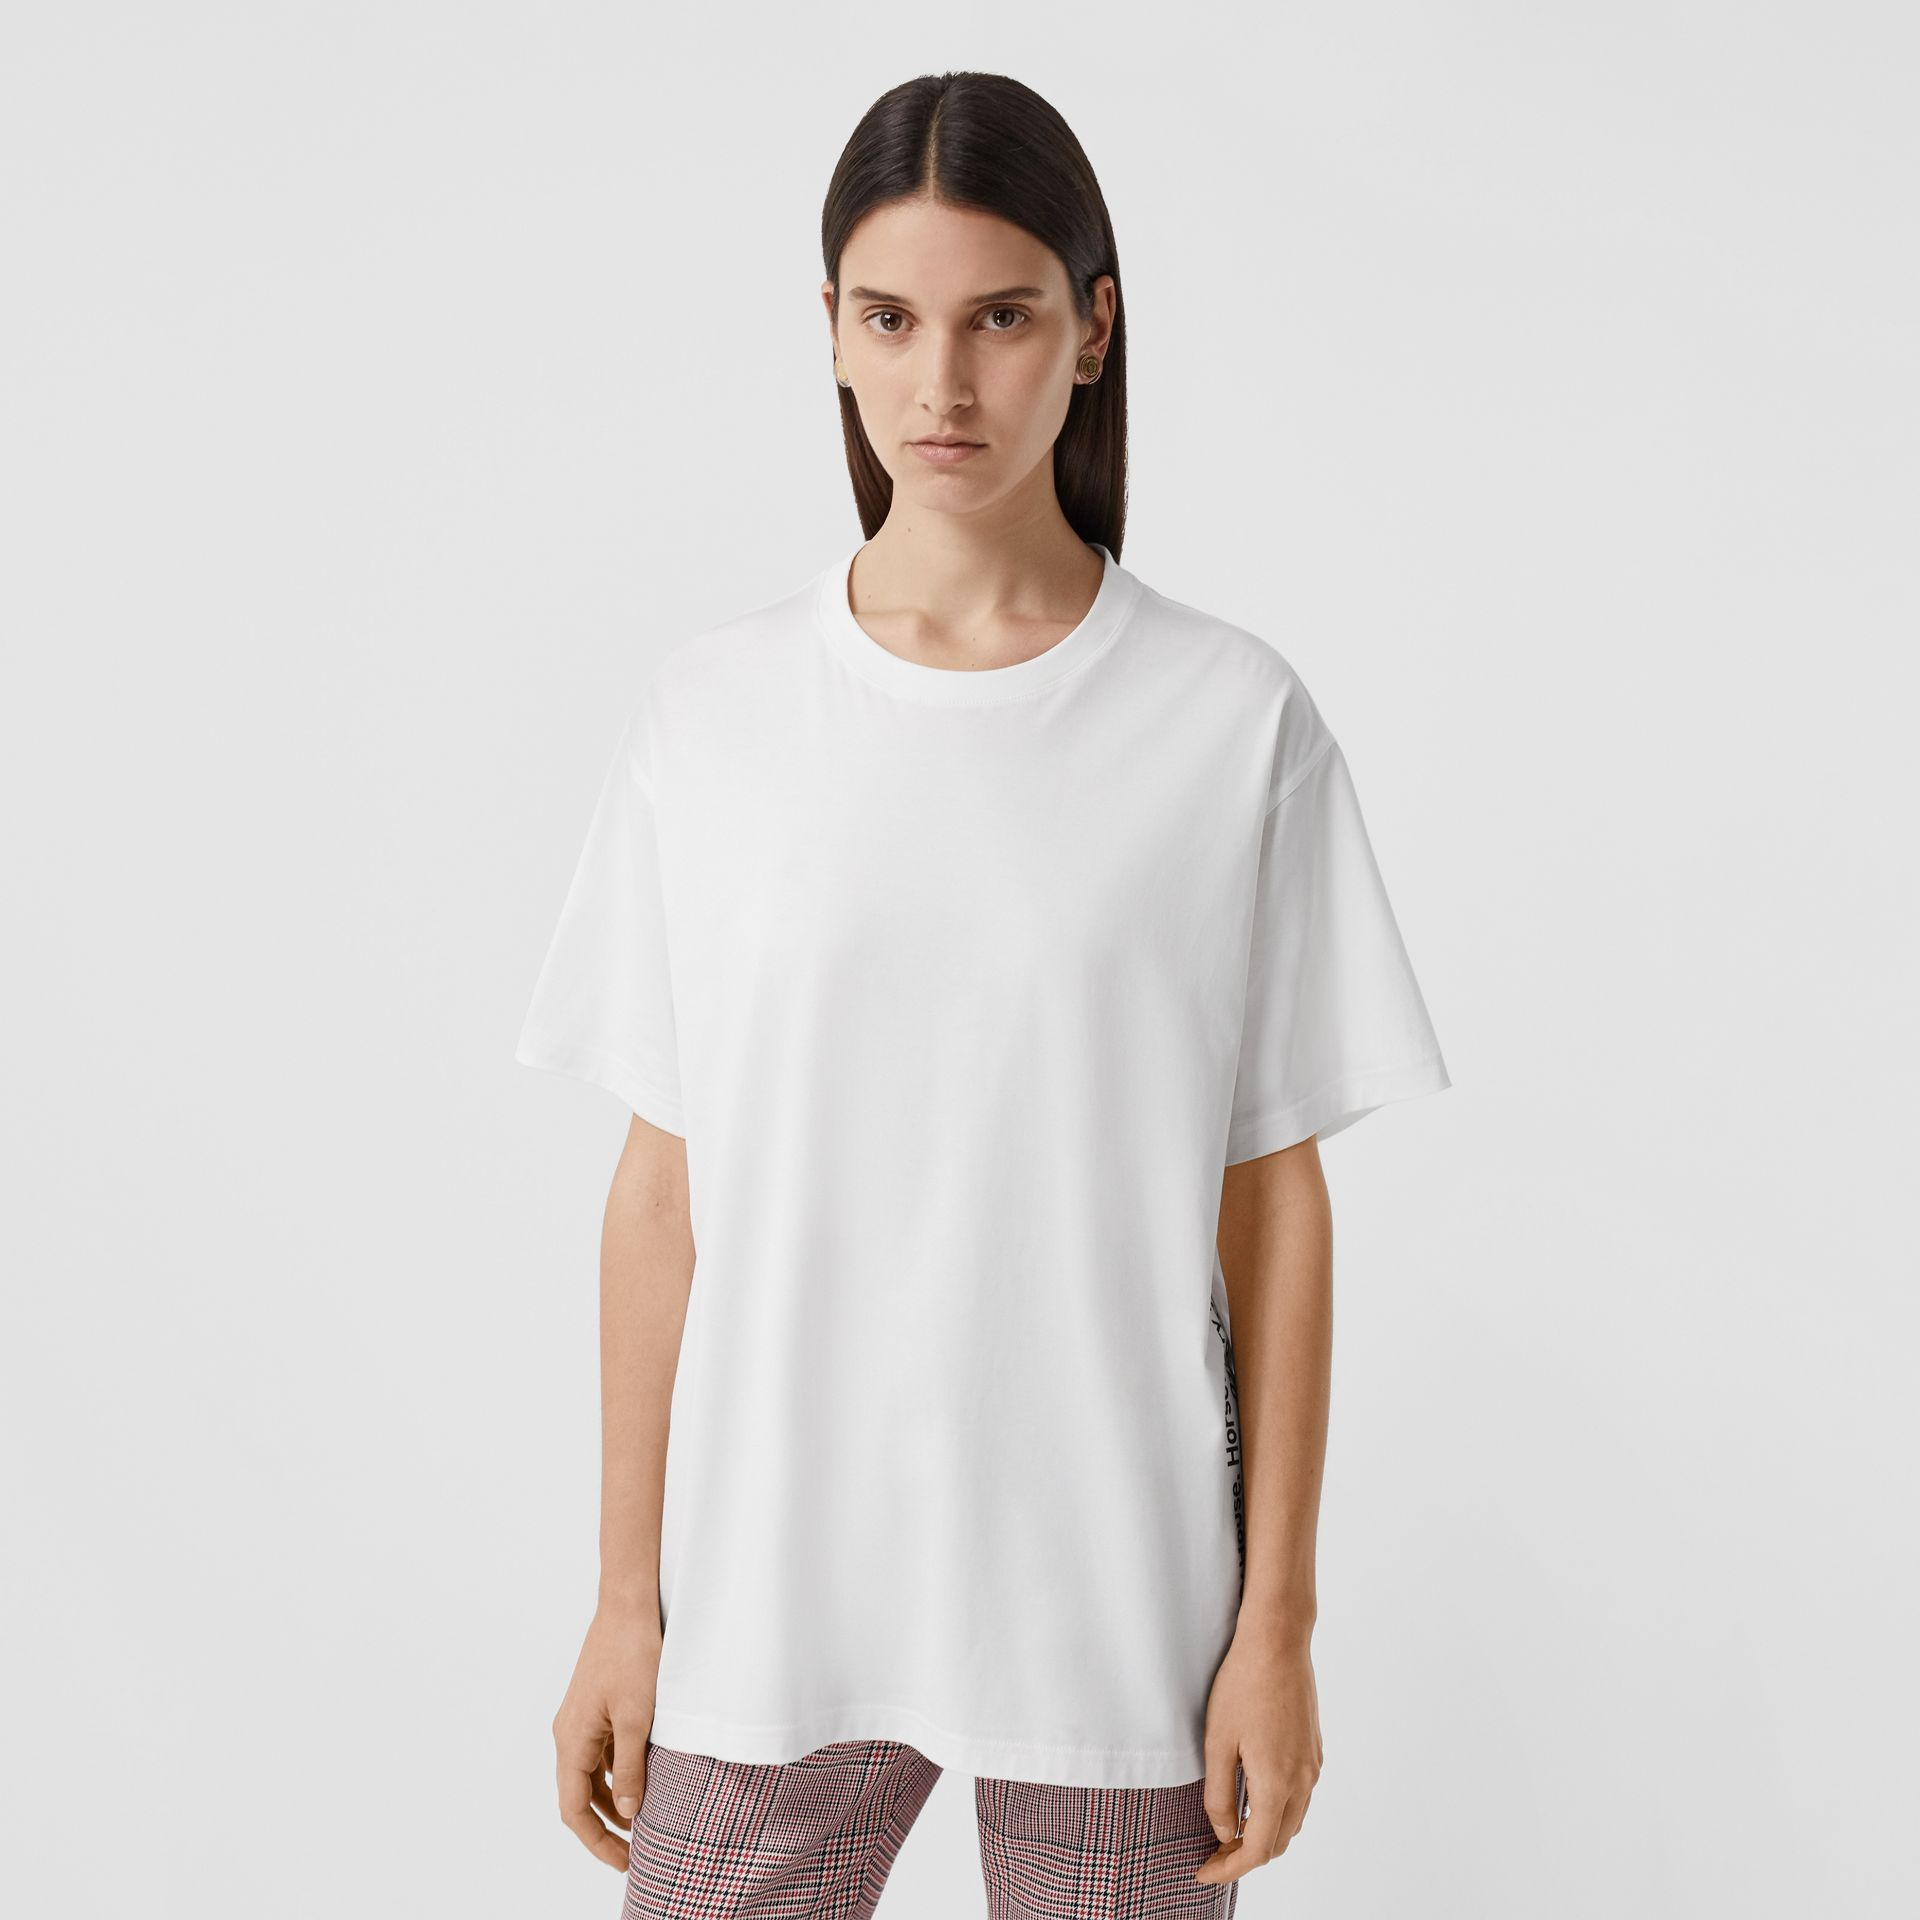 Coordinates Print Cotton Oversized T-shirt in White - Women | Burberry - gallery image 2